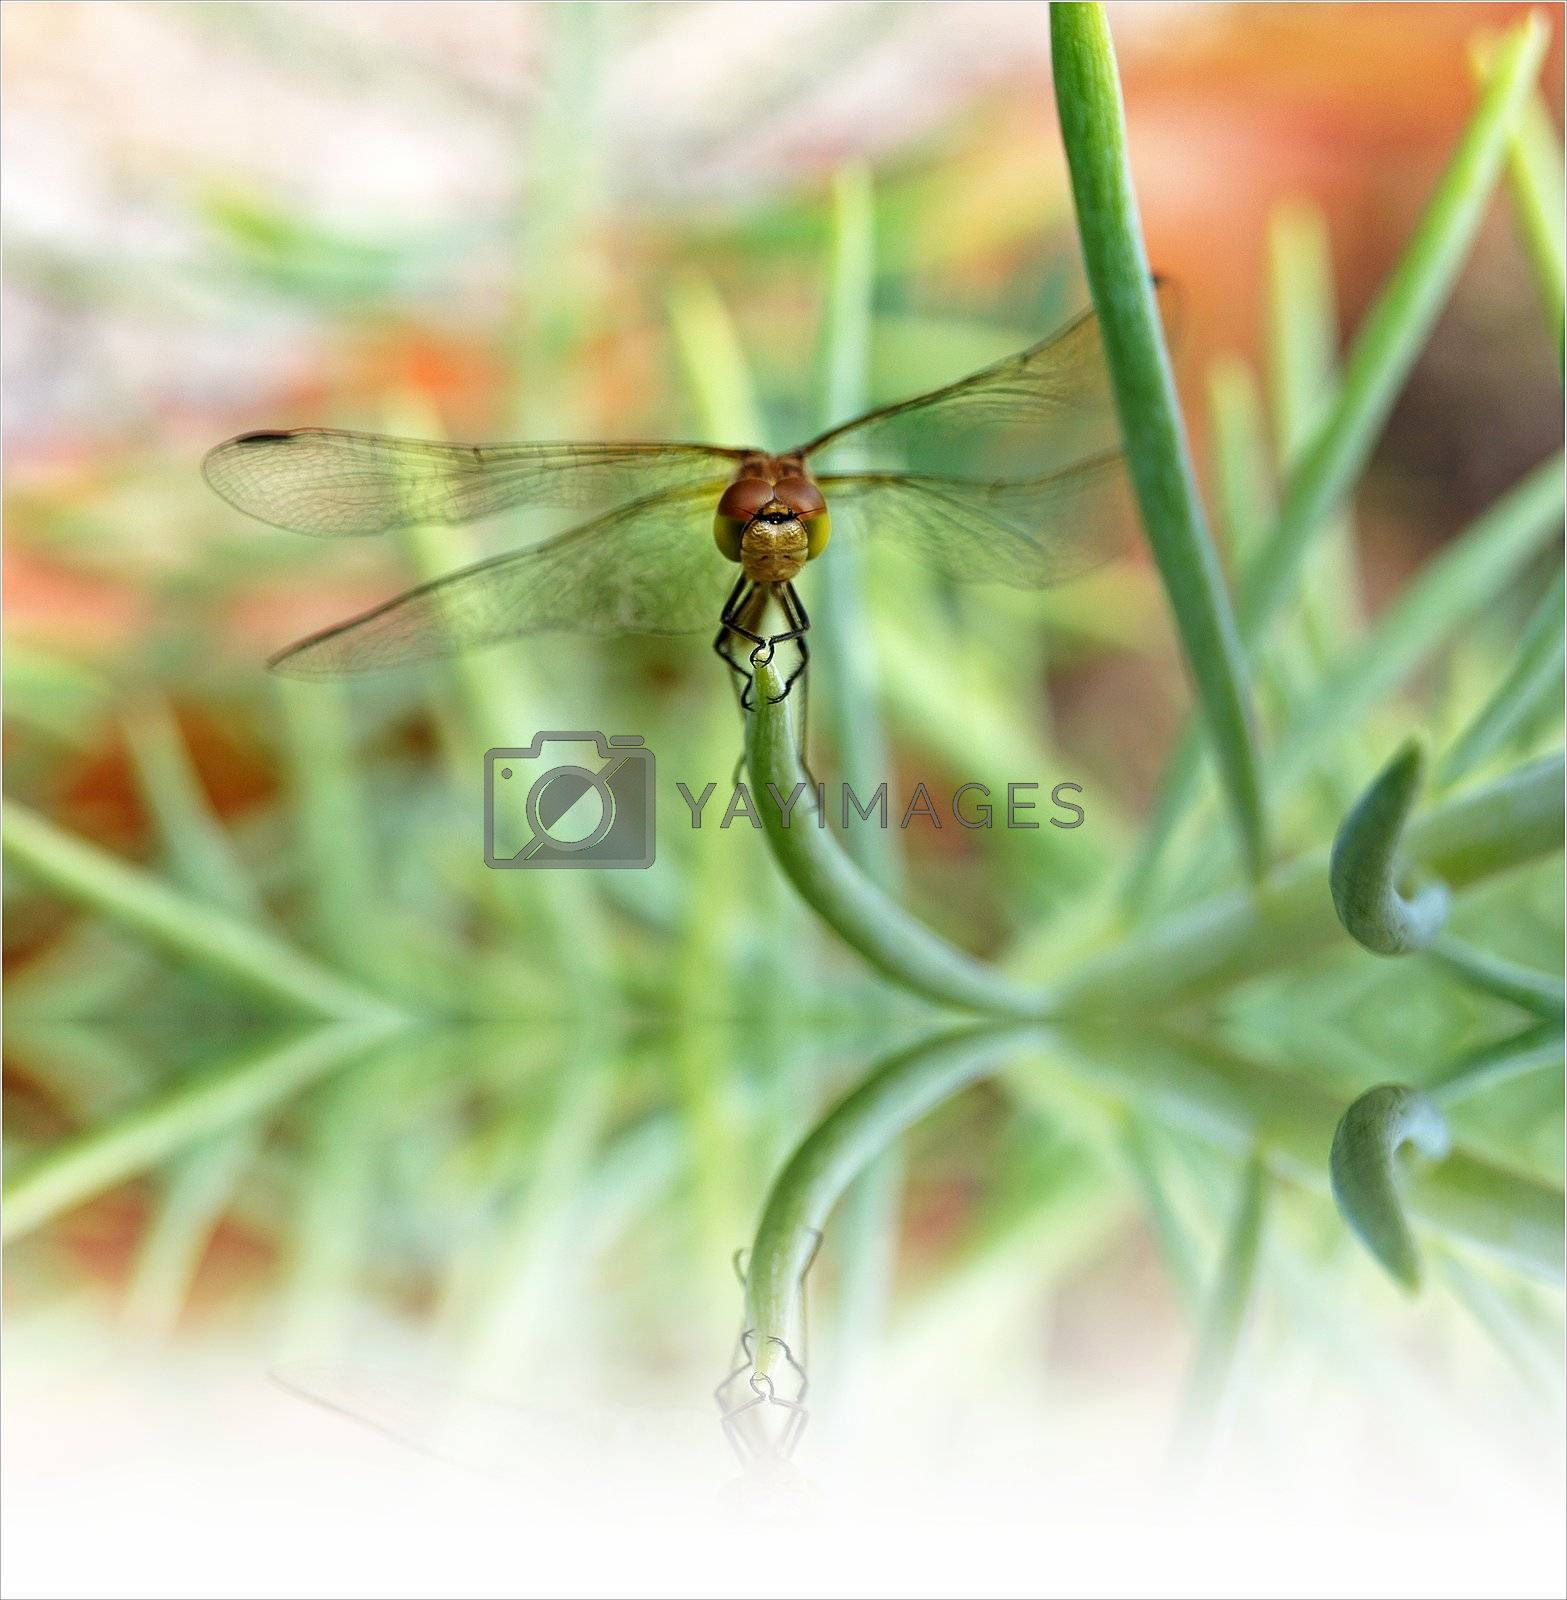 The close-up photography of a dragonfly on a green plant.